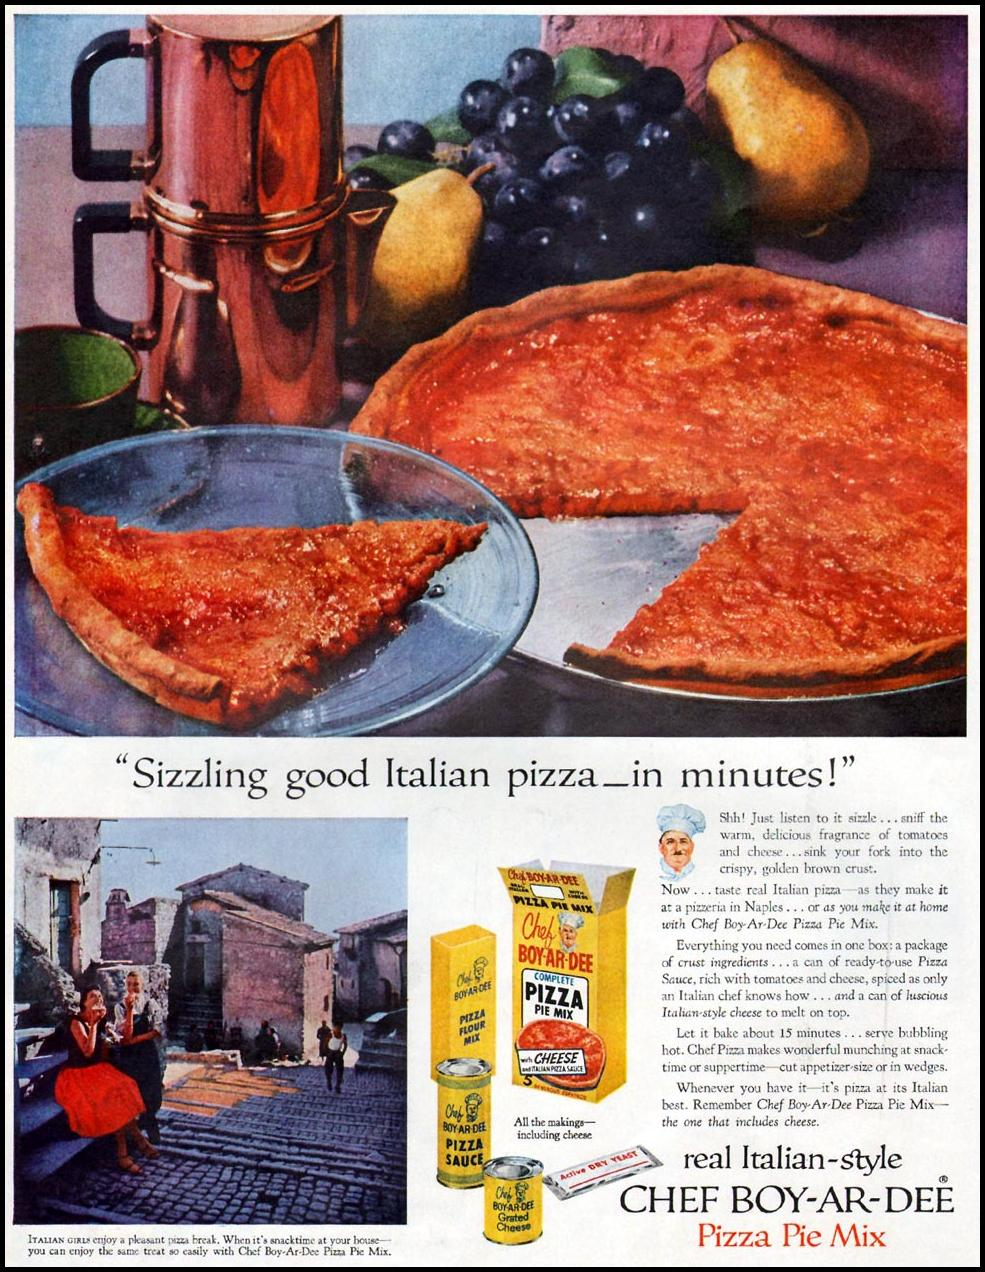 CHEF BOY-AR-DEE PIZZA PIE MIX LIFE 09/09/1957 p. 74